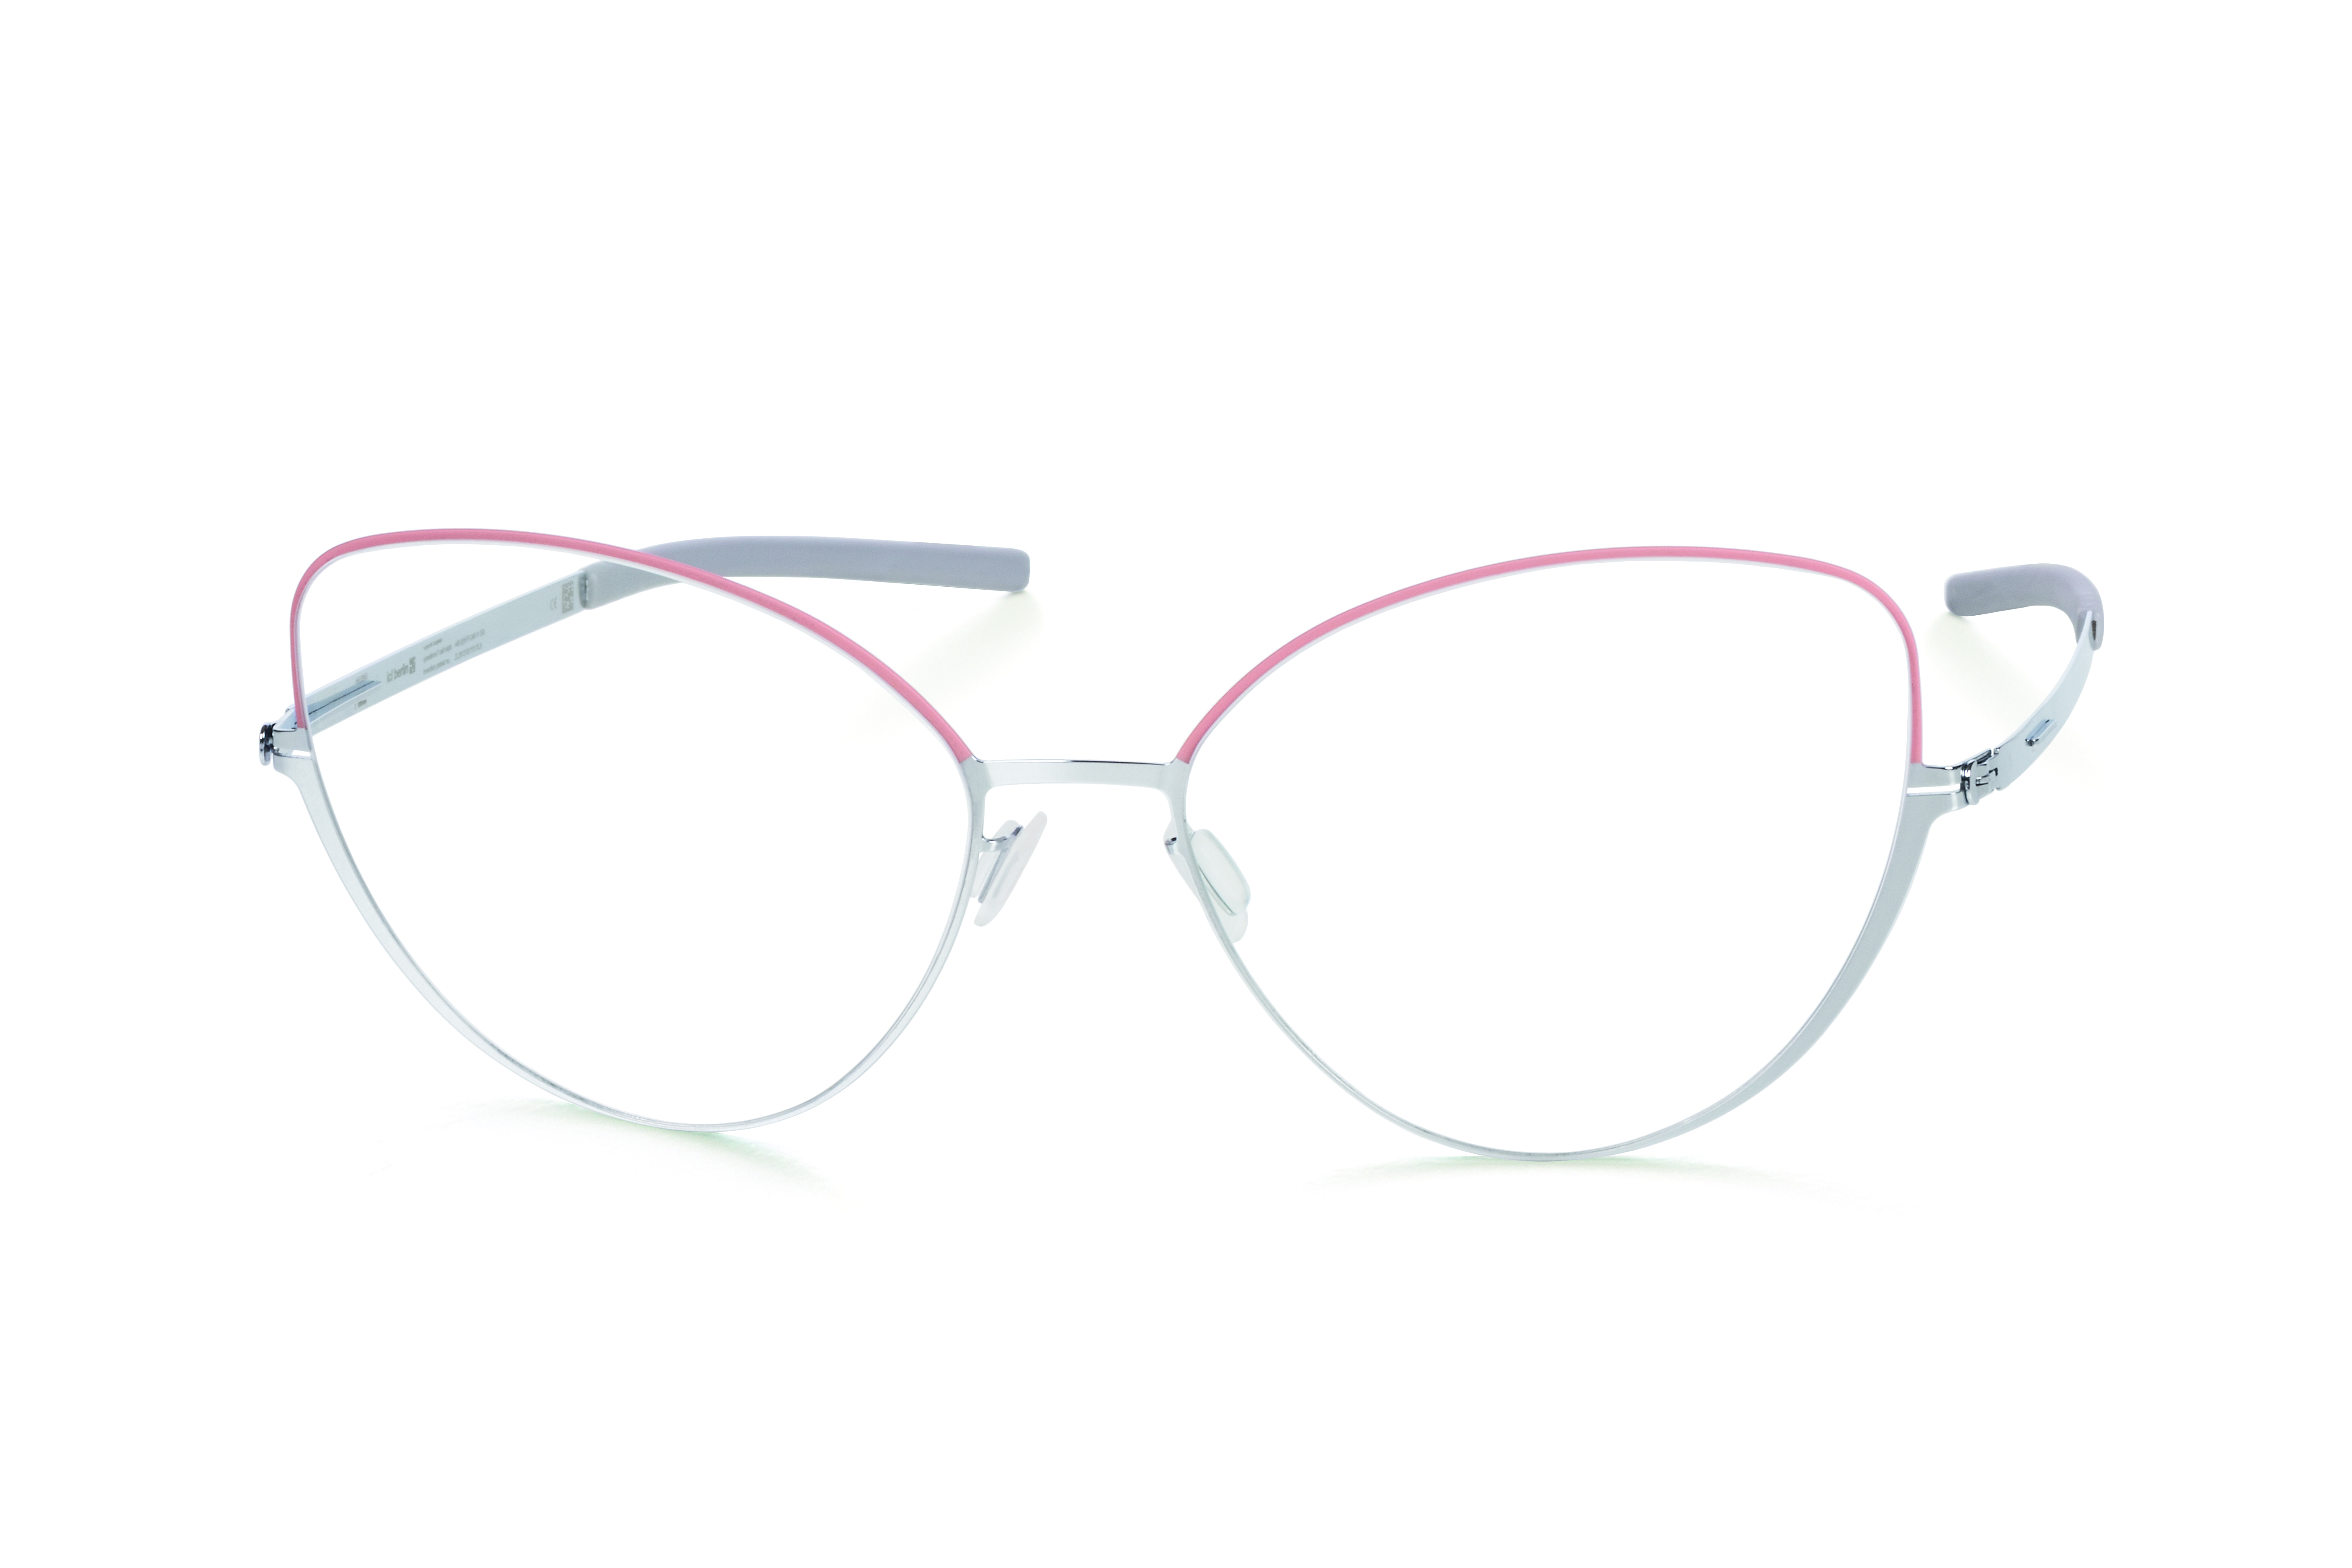 Hipster Glasses Frames Costco « One More Soul